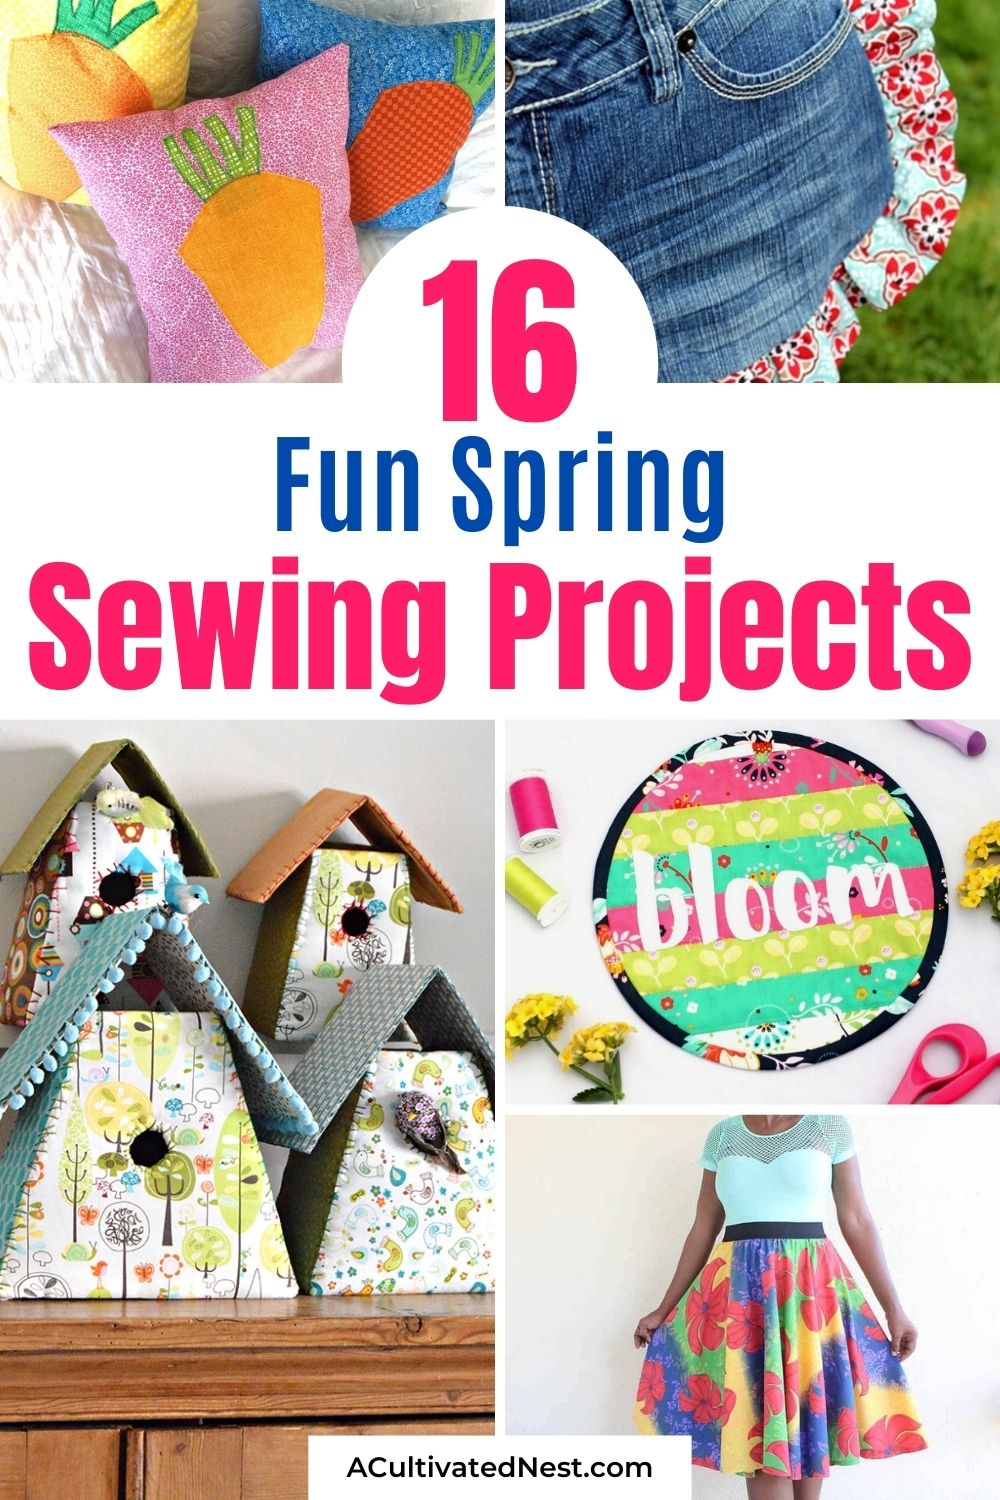 16 Fun Spring Sewing Projects- Whether you're a beginner sewer or more experienced, these spring sewing projects are sure to be a lot of fun! There are so many cute spring things you can sew! | #sewing #sewingProjects #springSewing #springDIYs #ACultivatedNest